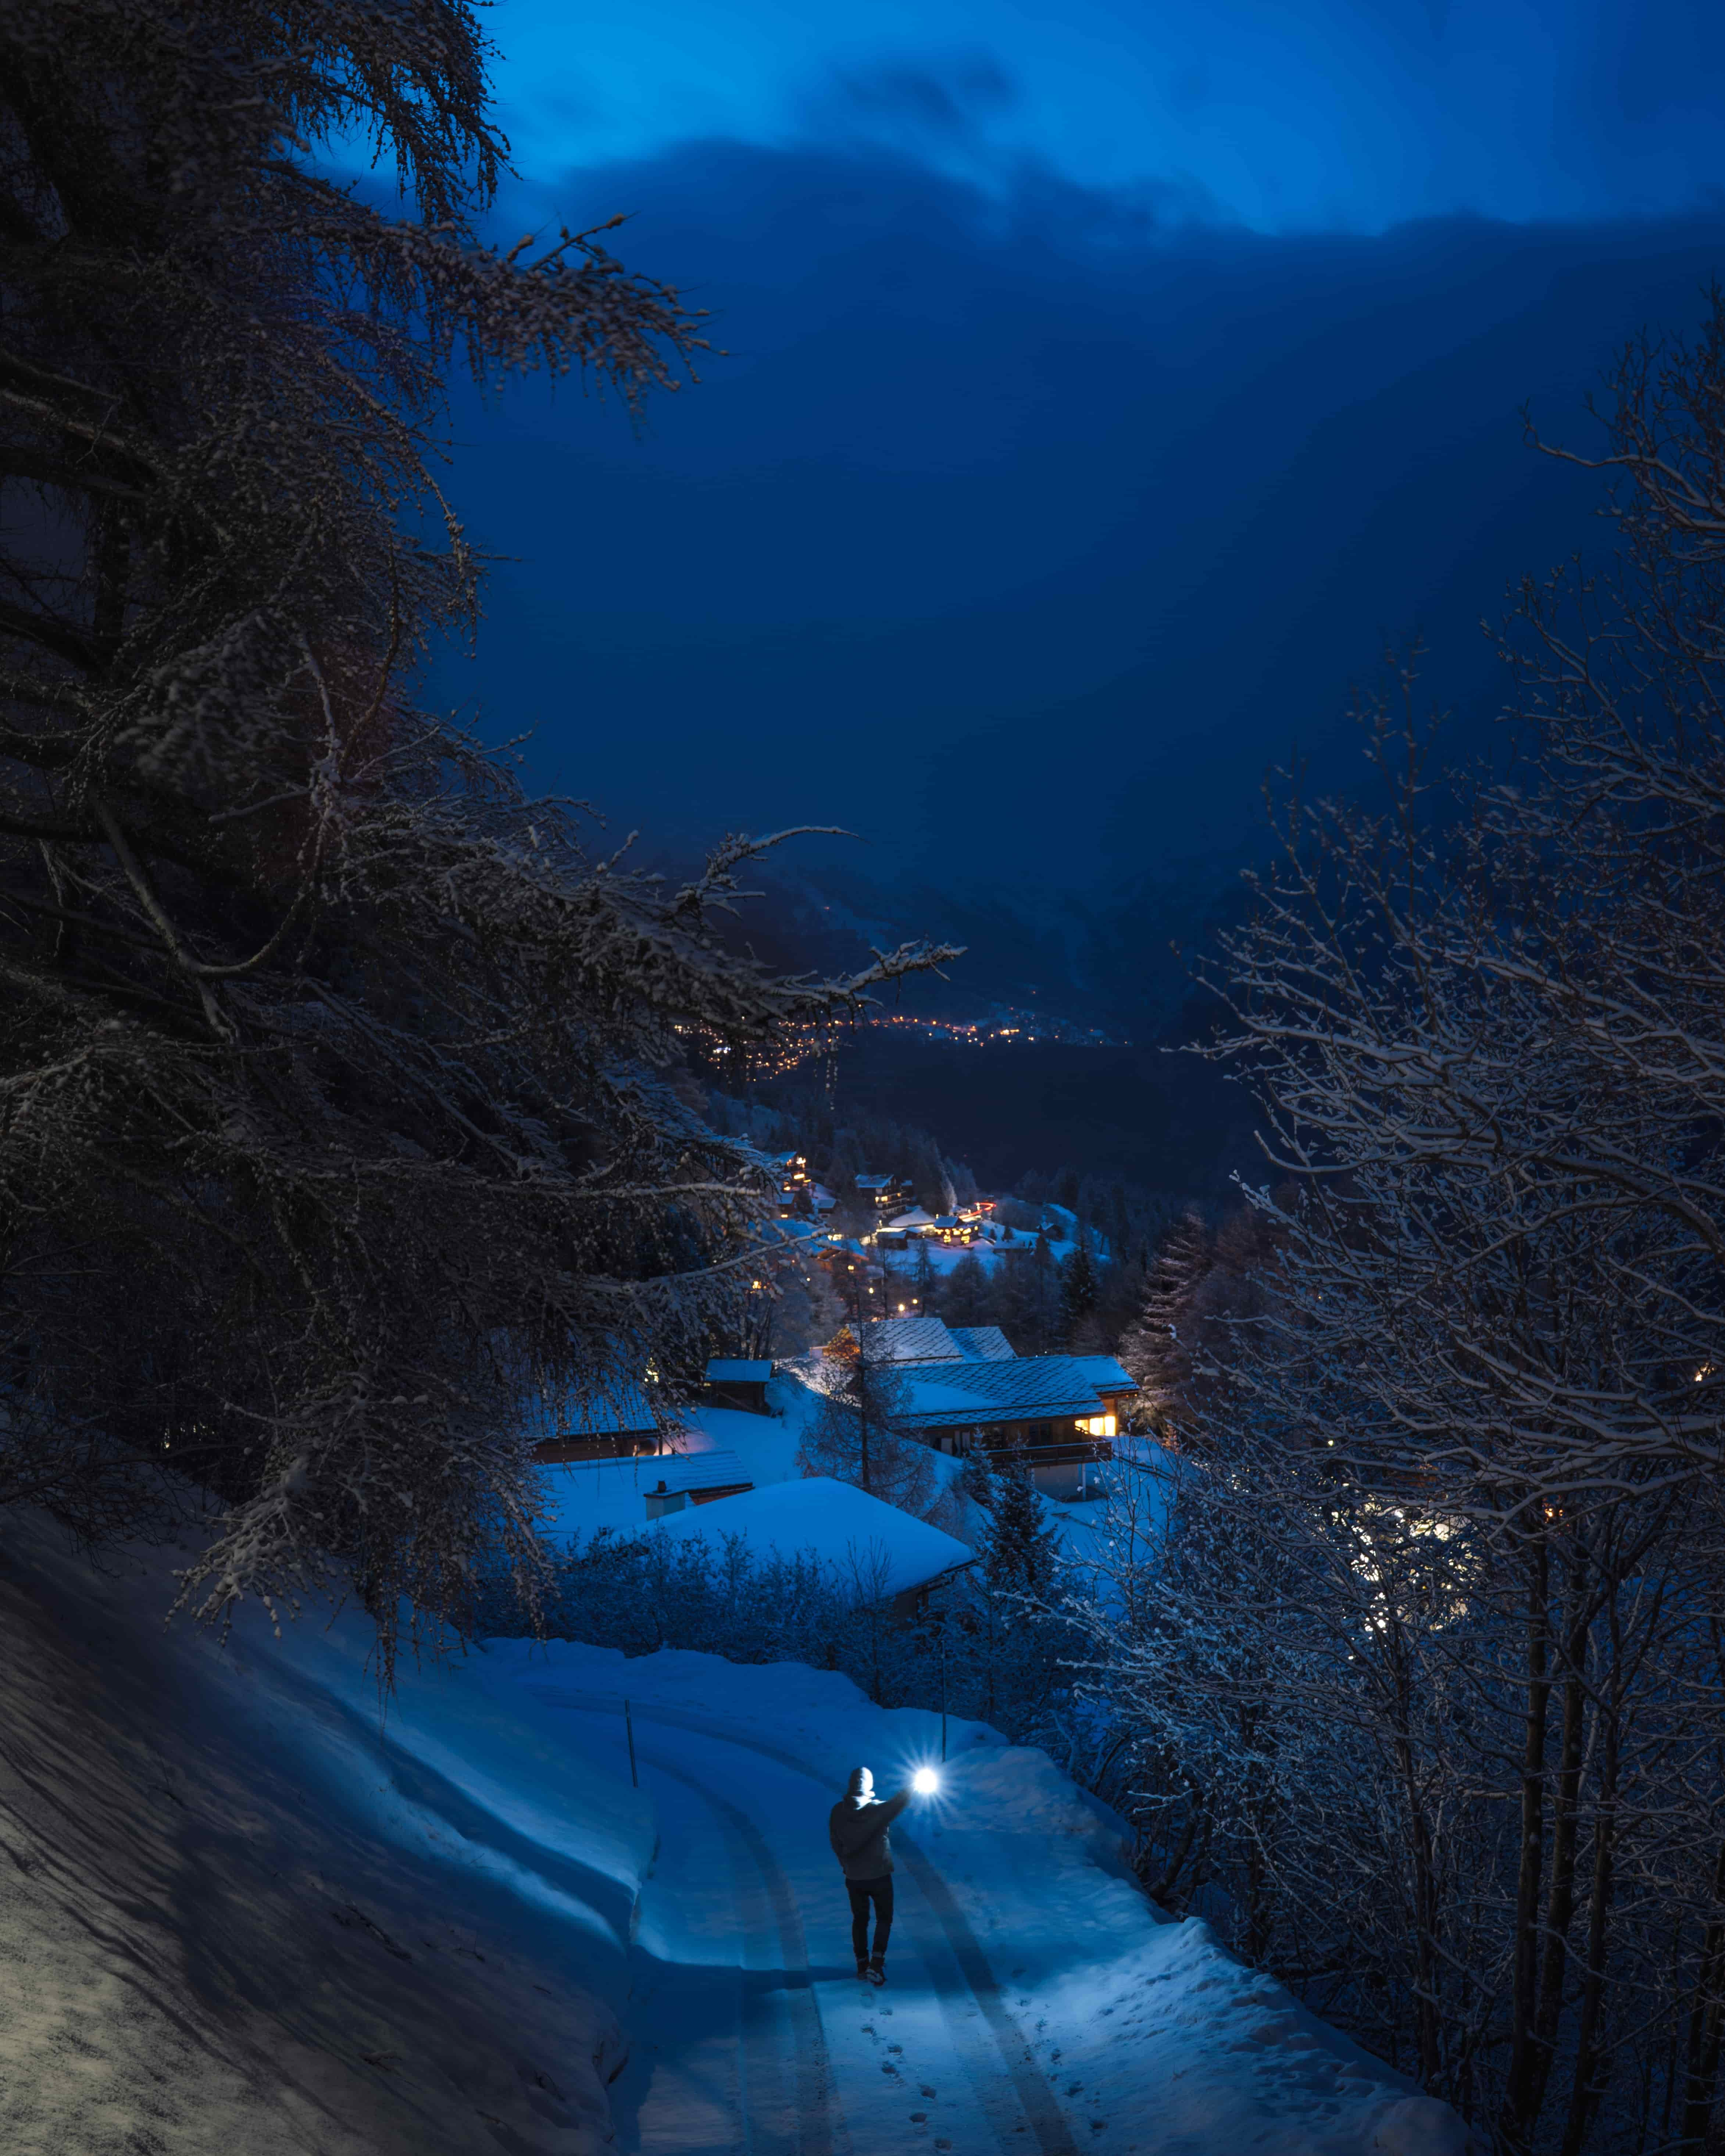 Image of ski resort under the snow at Christmas